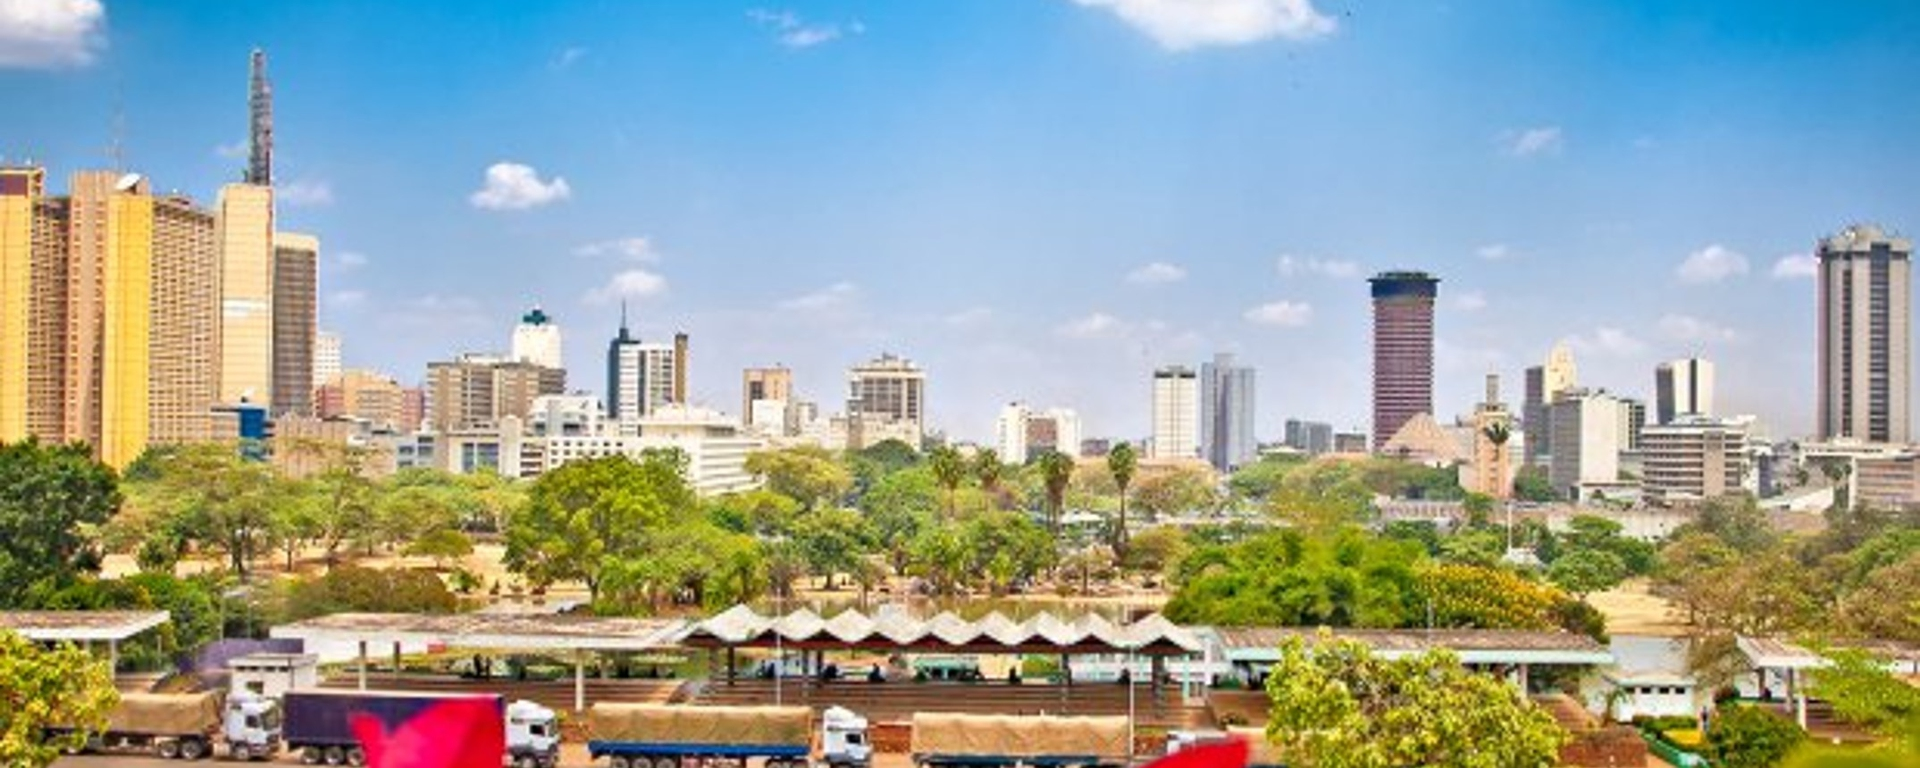 Access MBA - Access MBA Tour - Nairobi Movemeback African event cover image